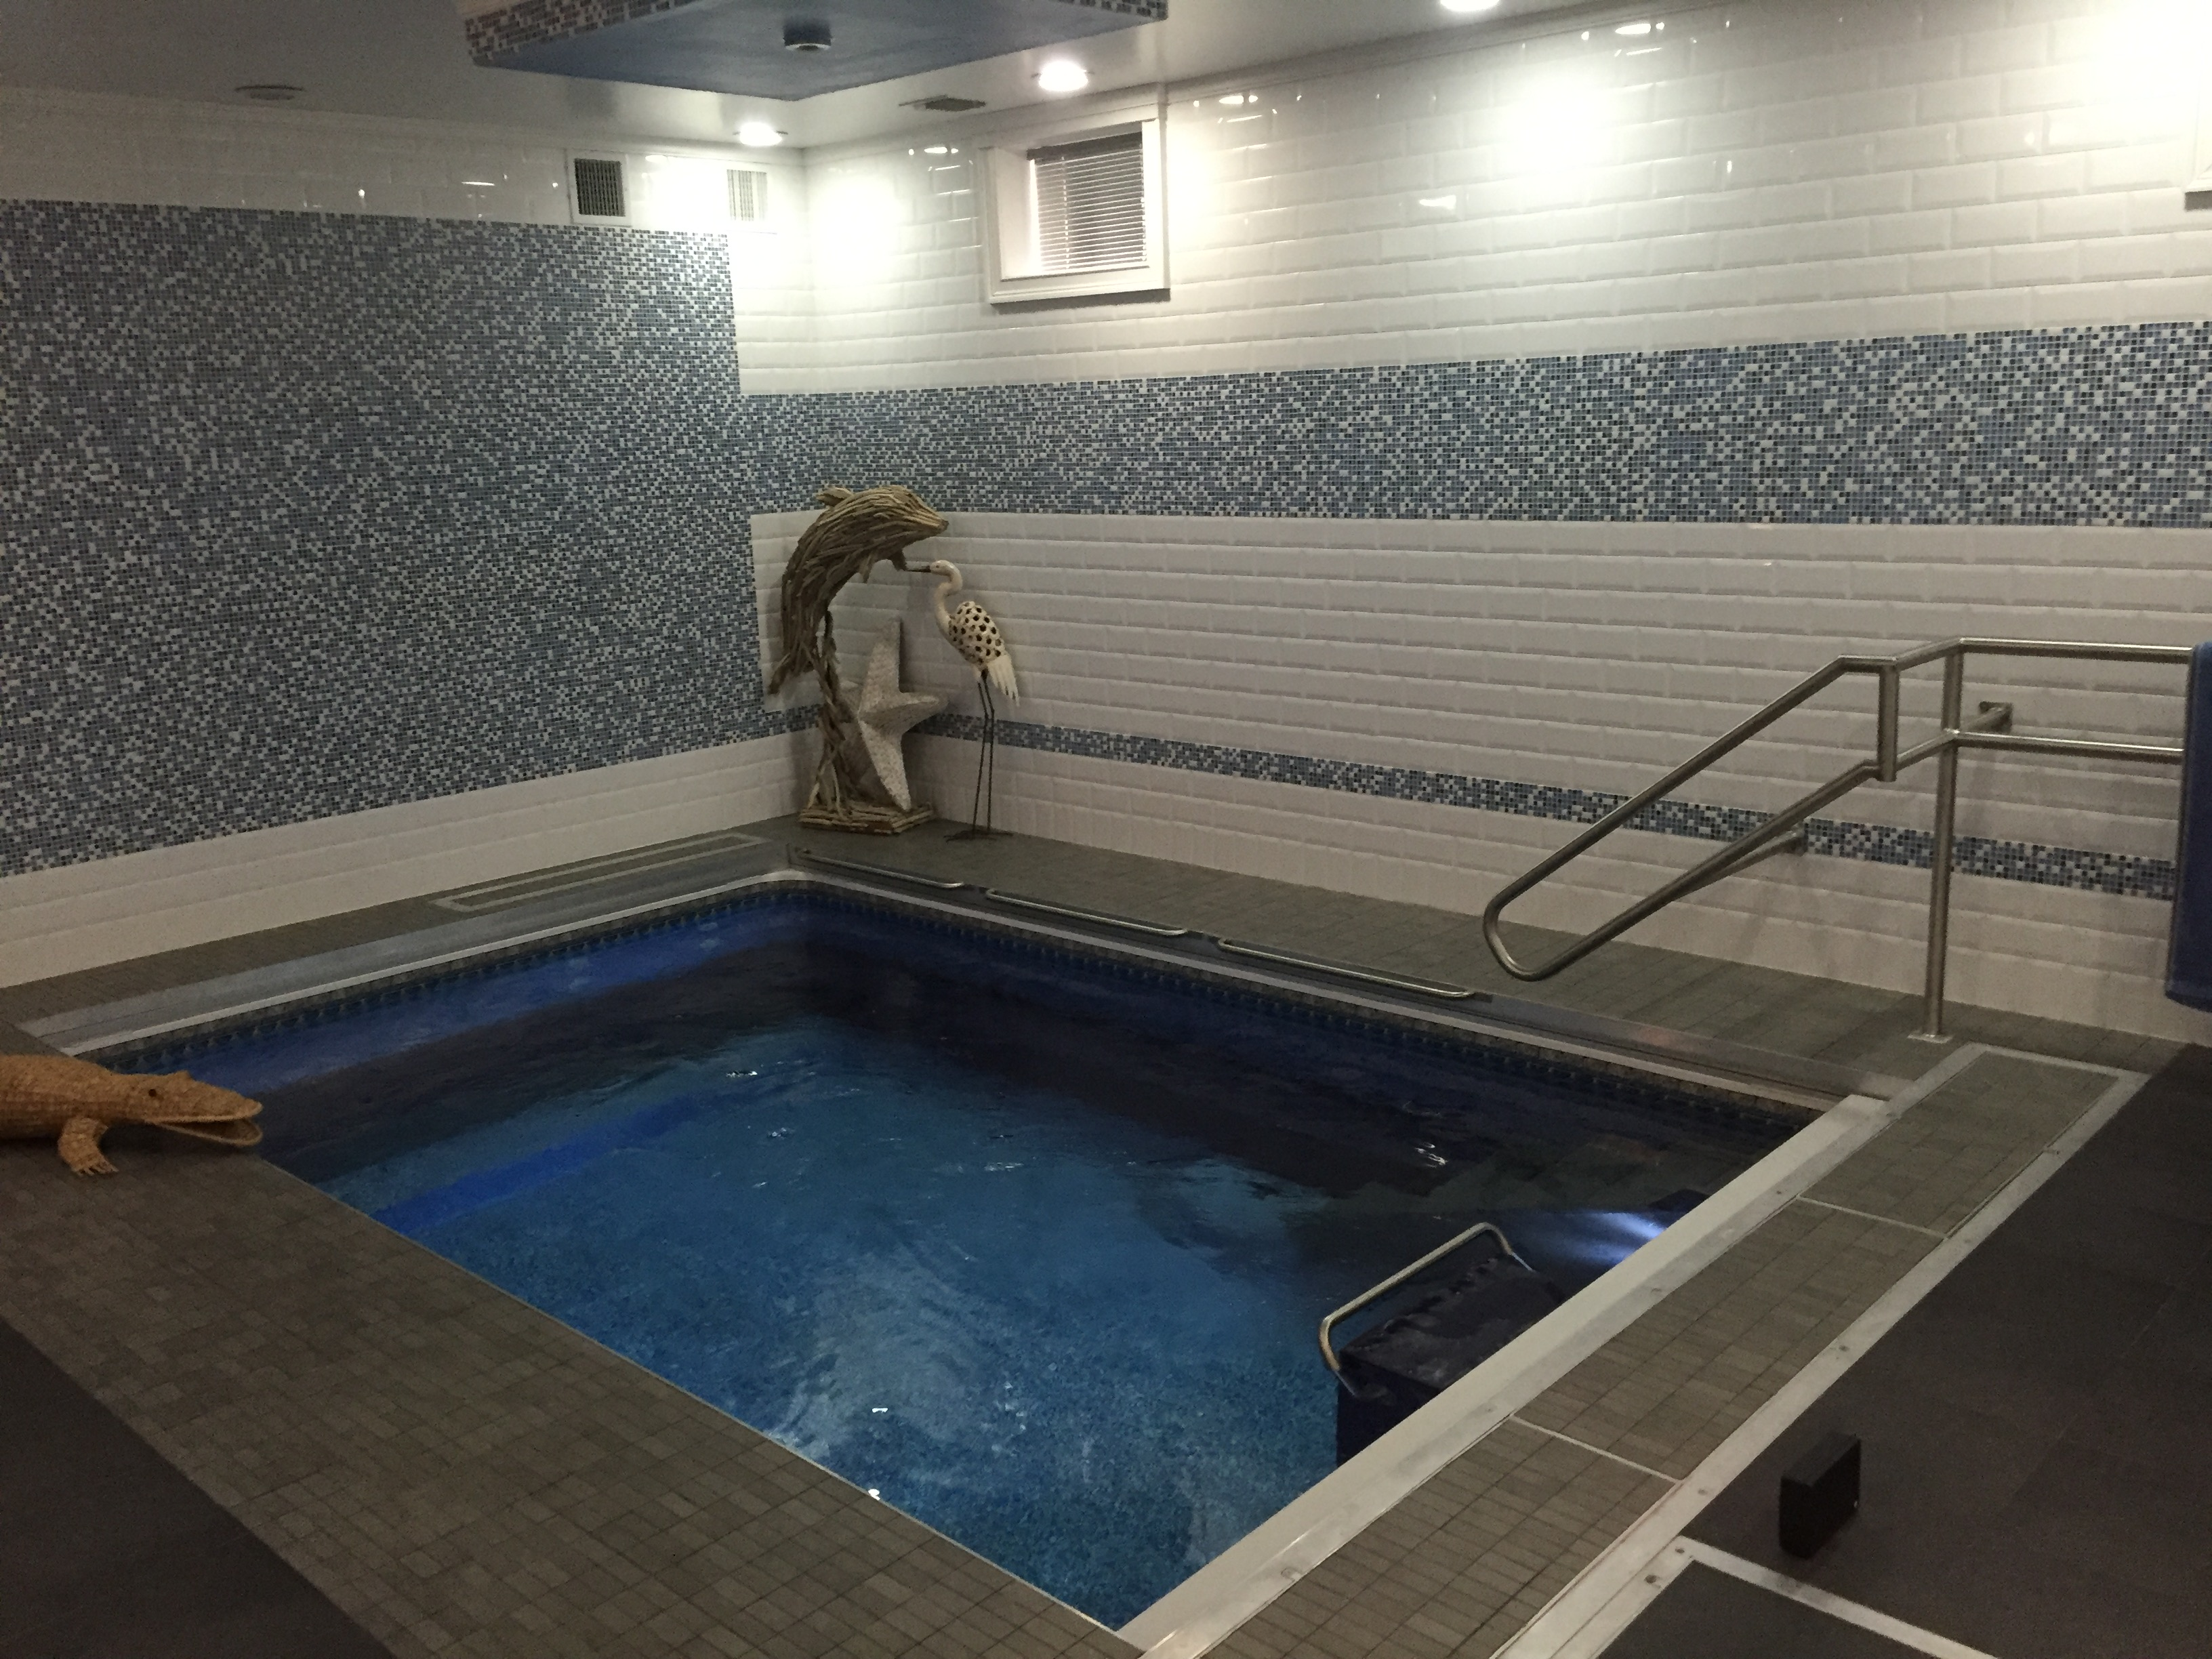 an Endless Pool used for aquatic therapy to treat cerebral palsy